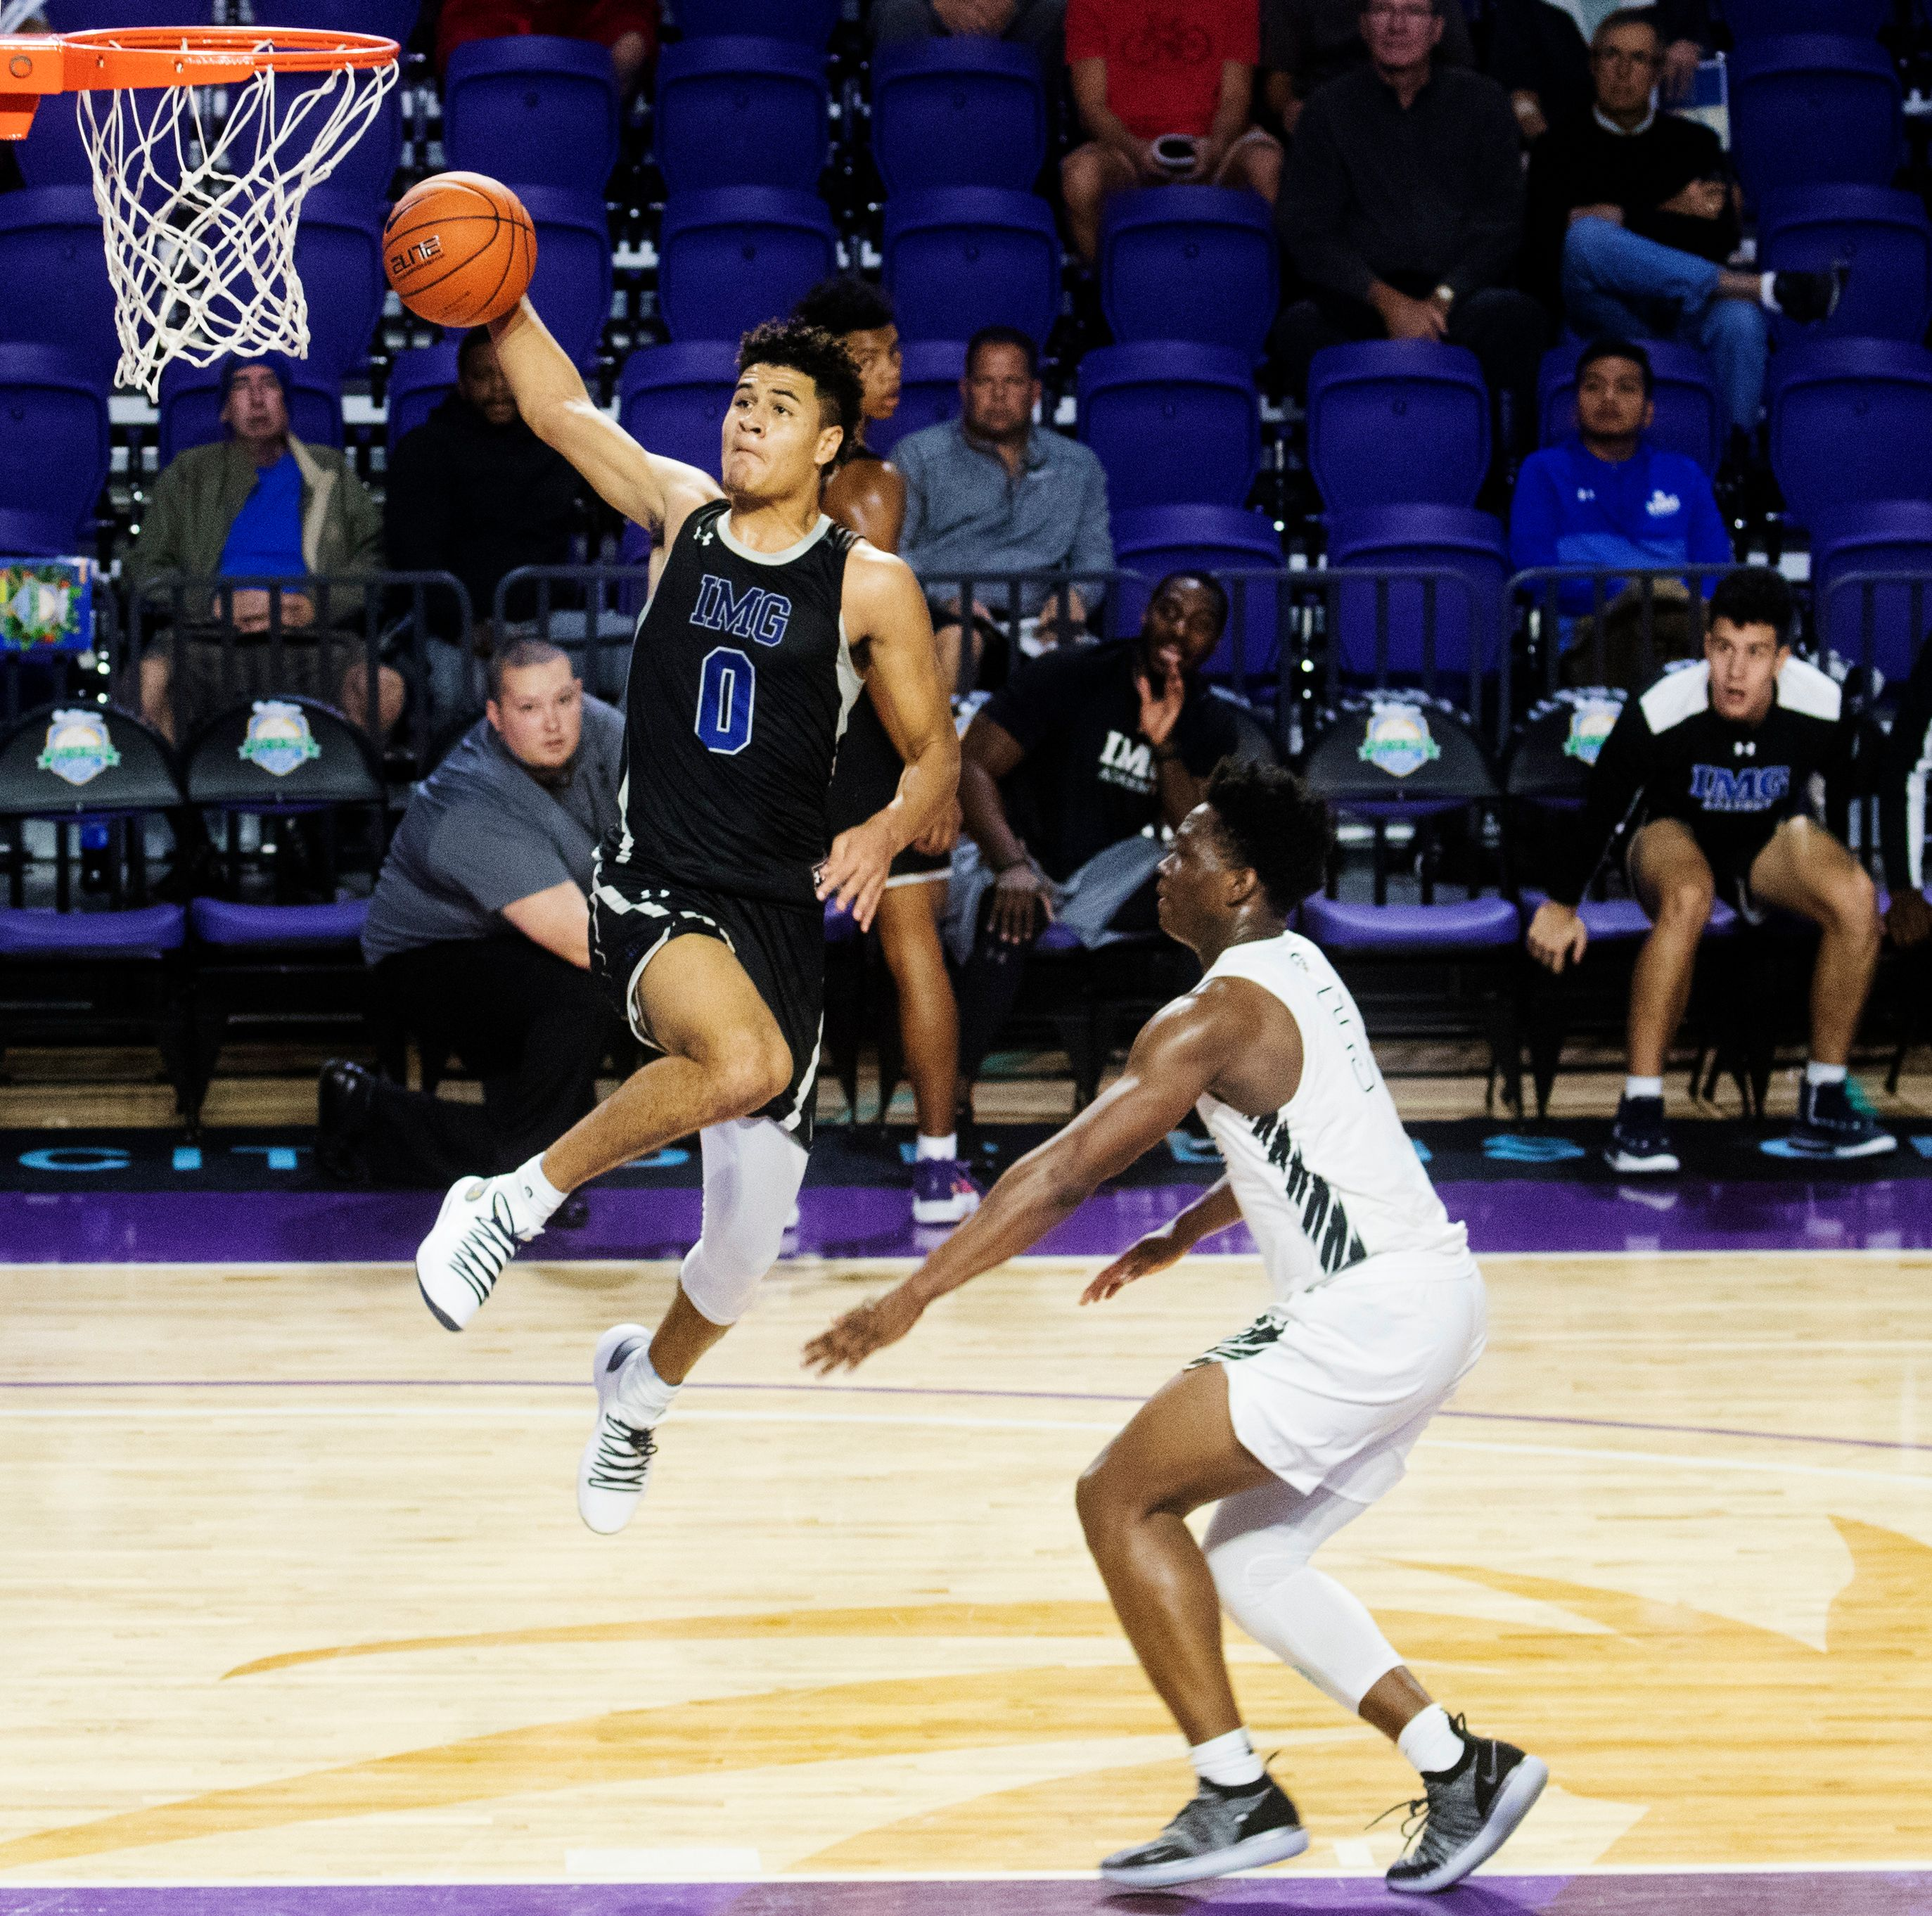 IMG's Josh Green scores against Gray Collegiate in the City of Palms Classic first round game at Suncoast Credit Union Arena on Tuesday. Green led all scorers with 22 points as IMG won 82-68. Photo: Andrew West/The News-Press